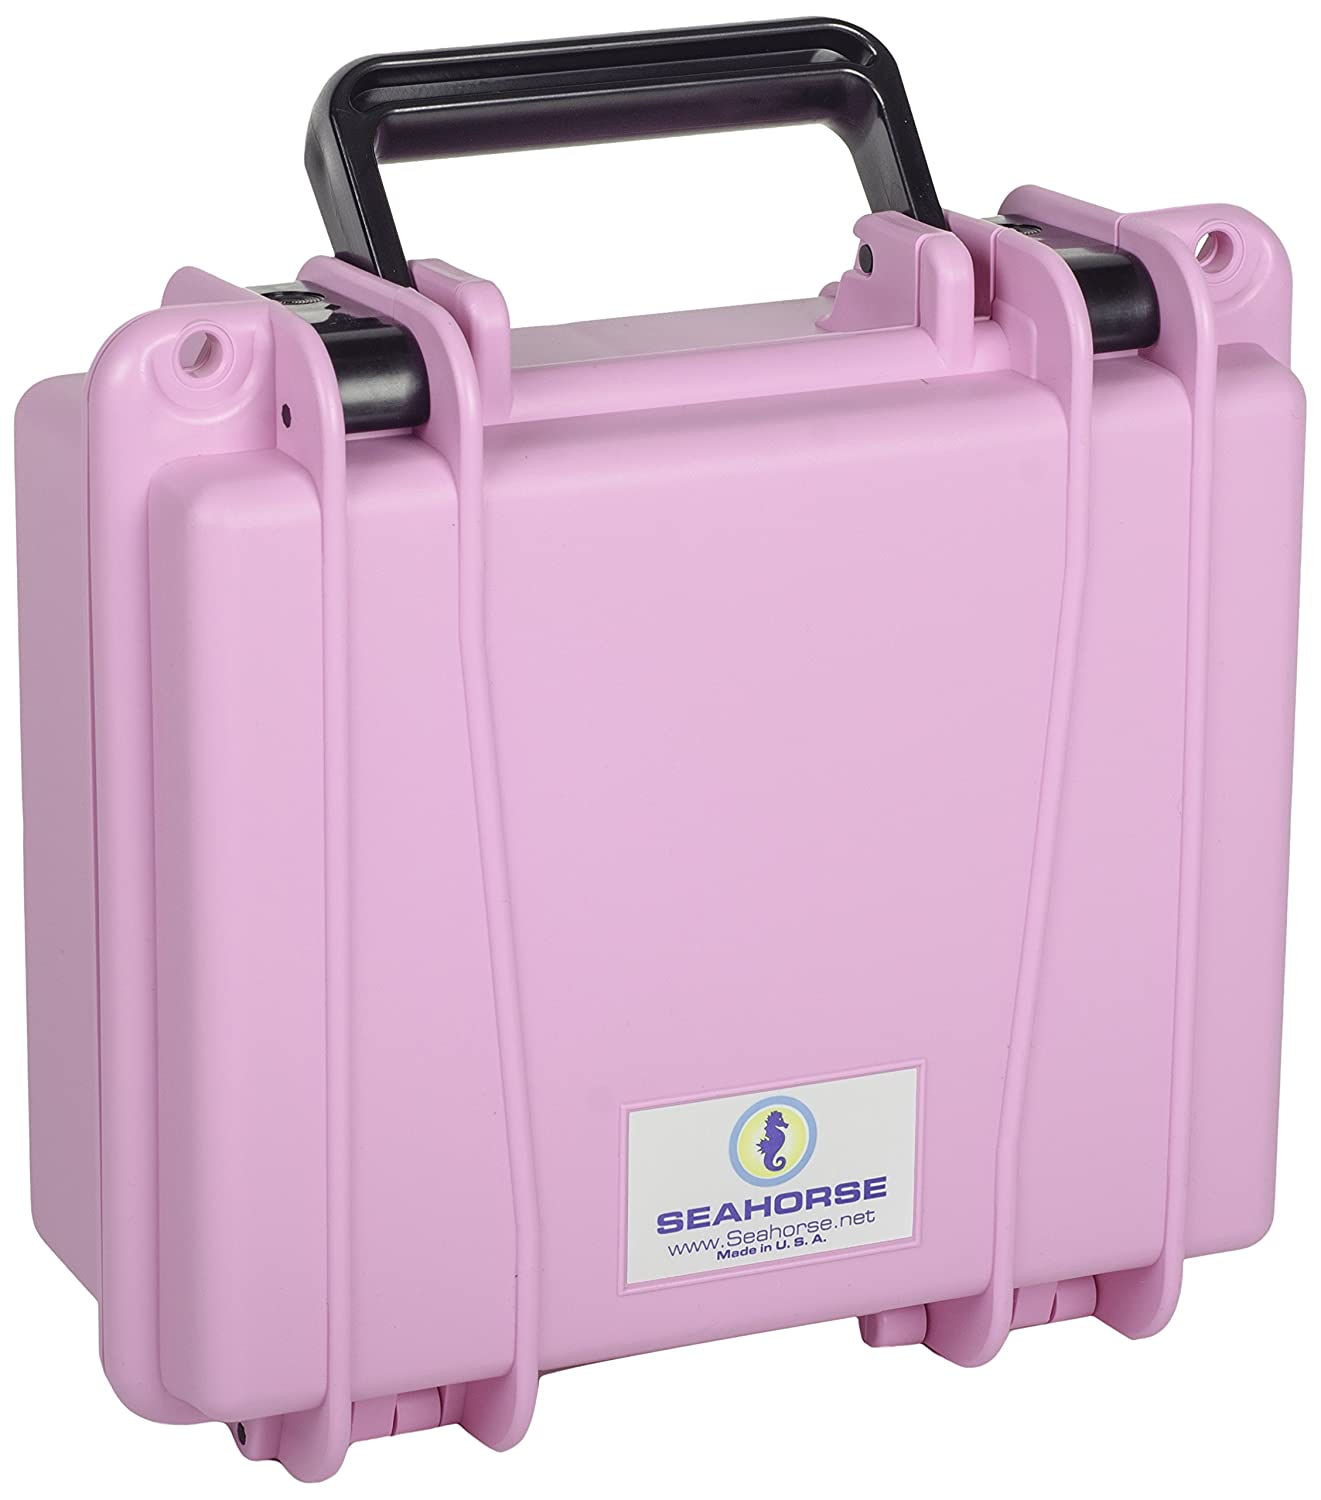 Seahorse SE300,PK Protective Equipment Cases Pink